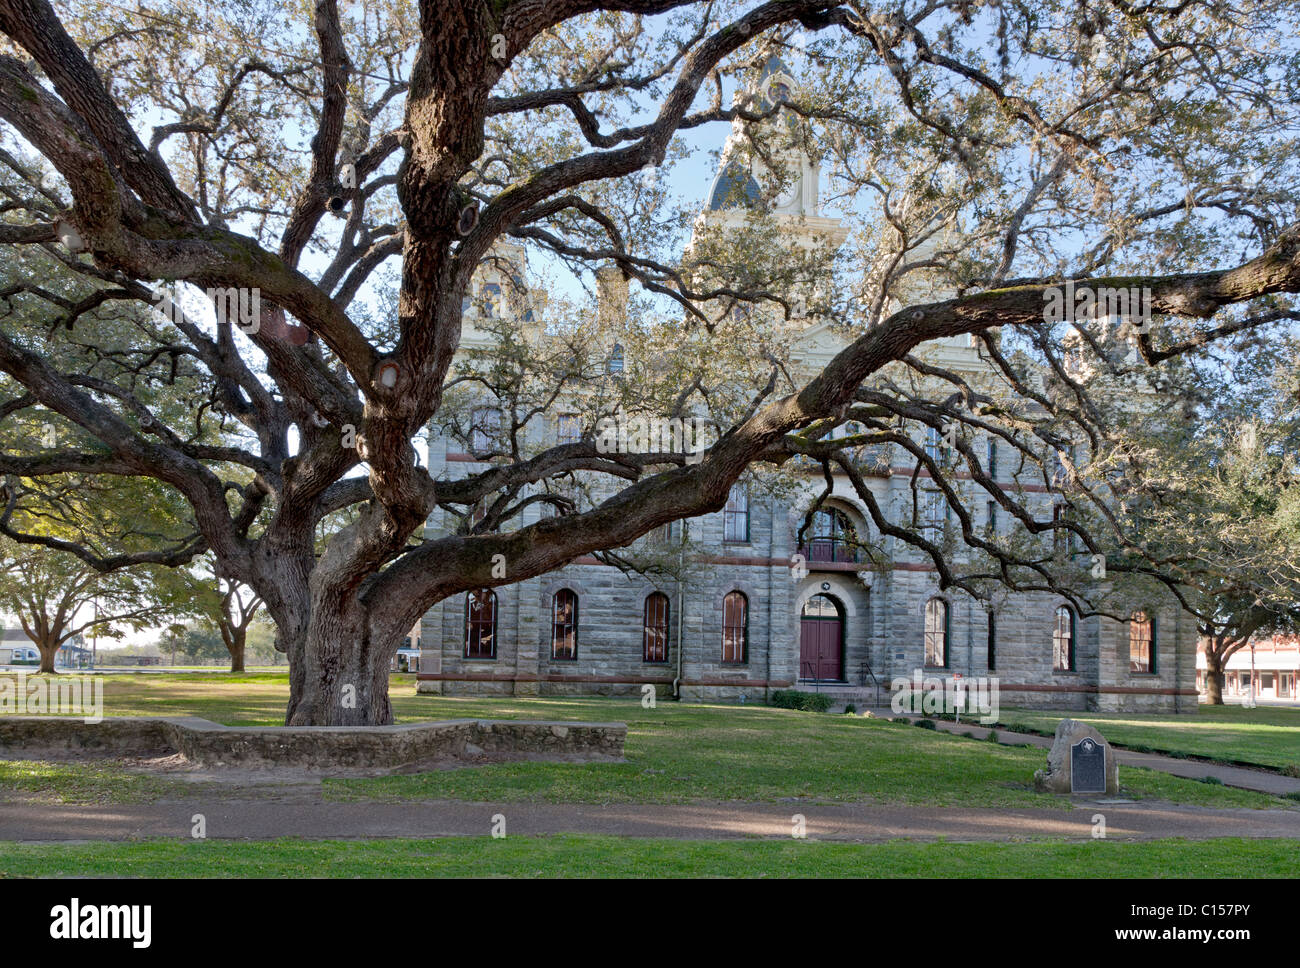 Goliad County Courthouse, Texas - Stock Image